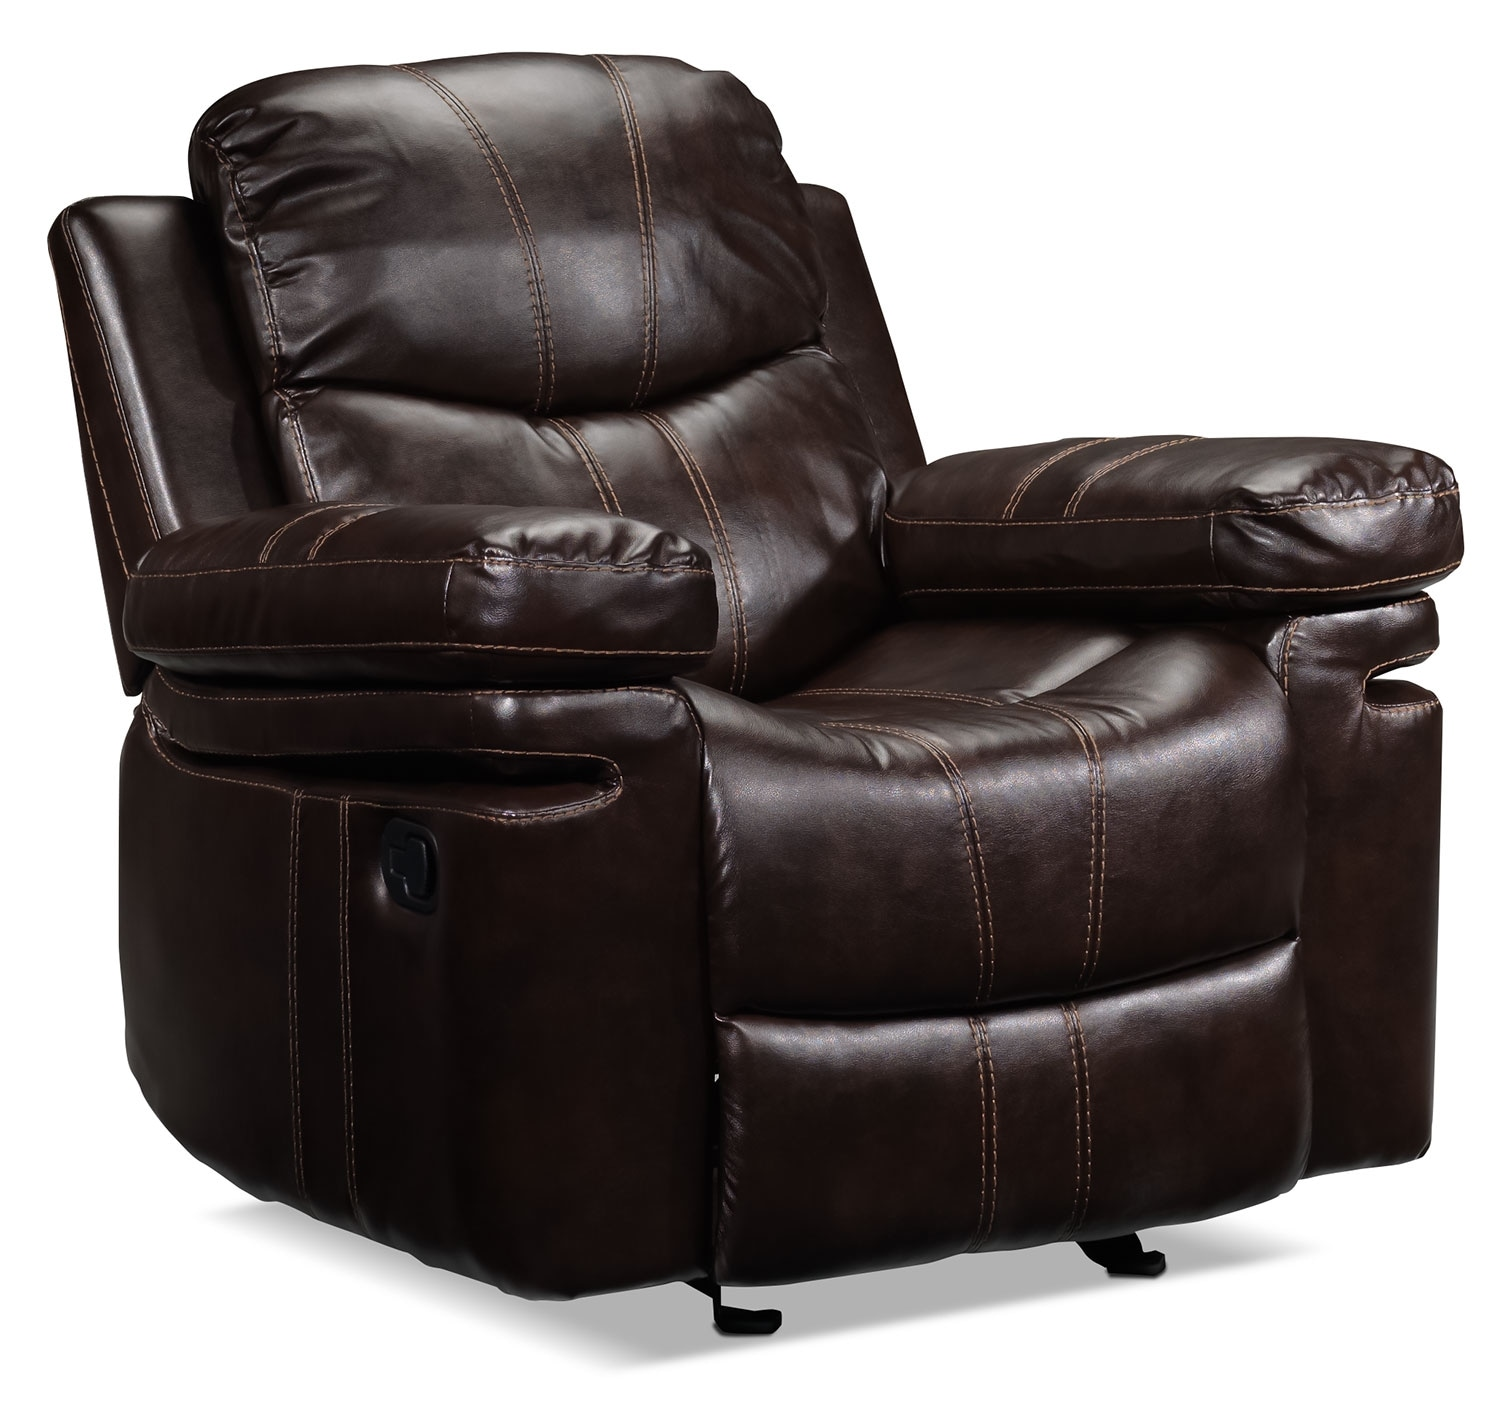 Barcelona Rocker Recliner - Brown